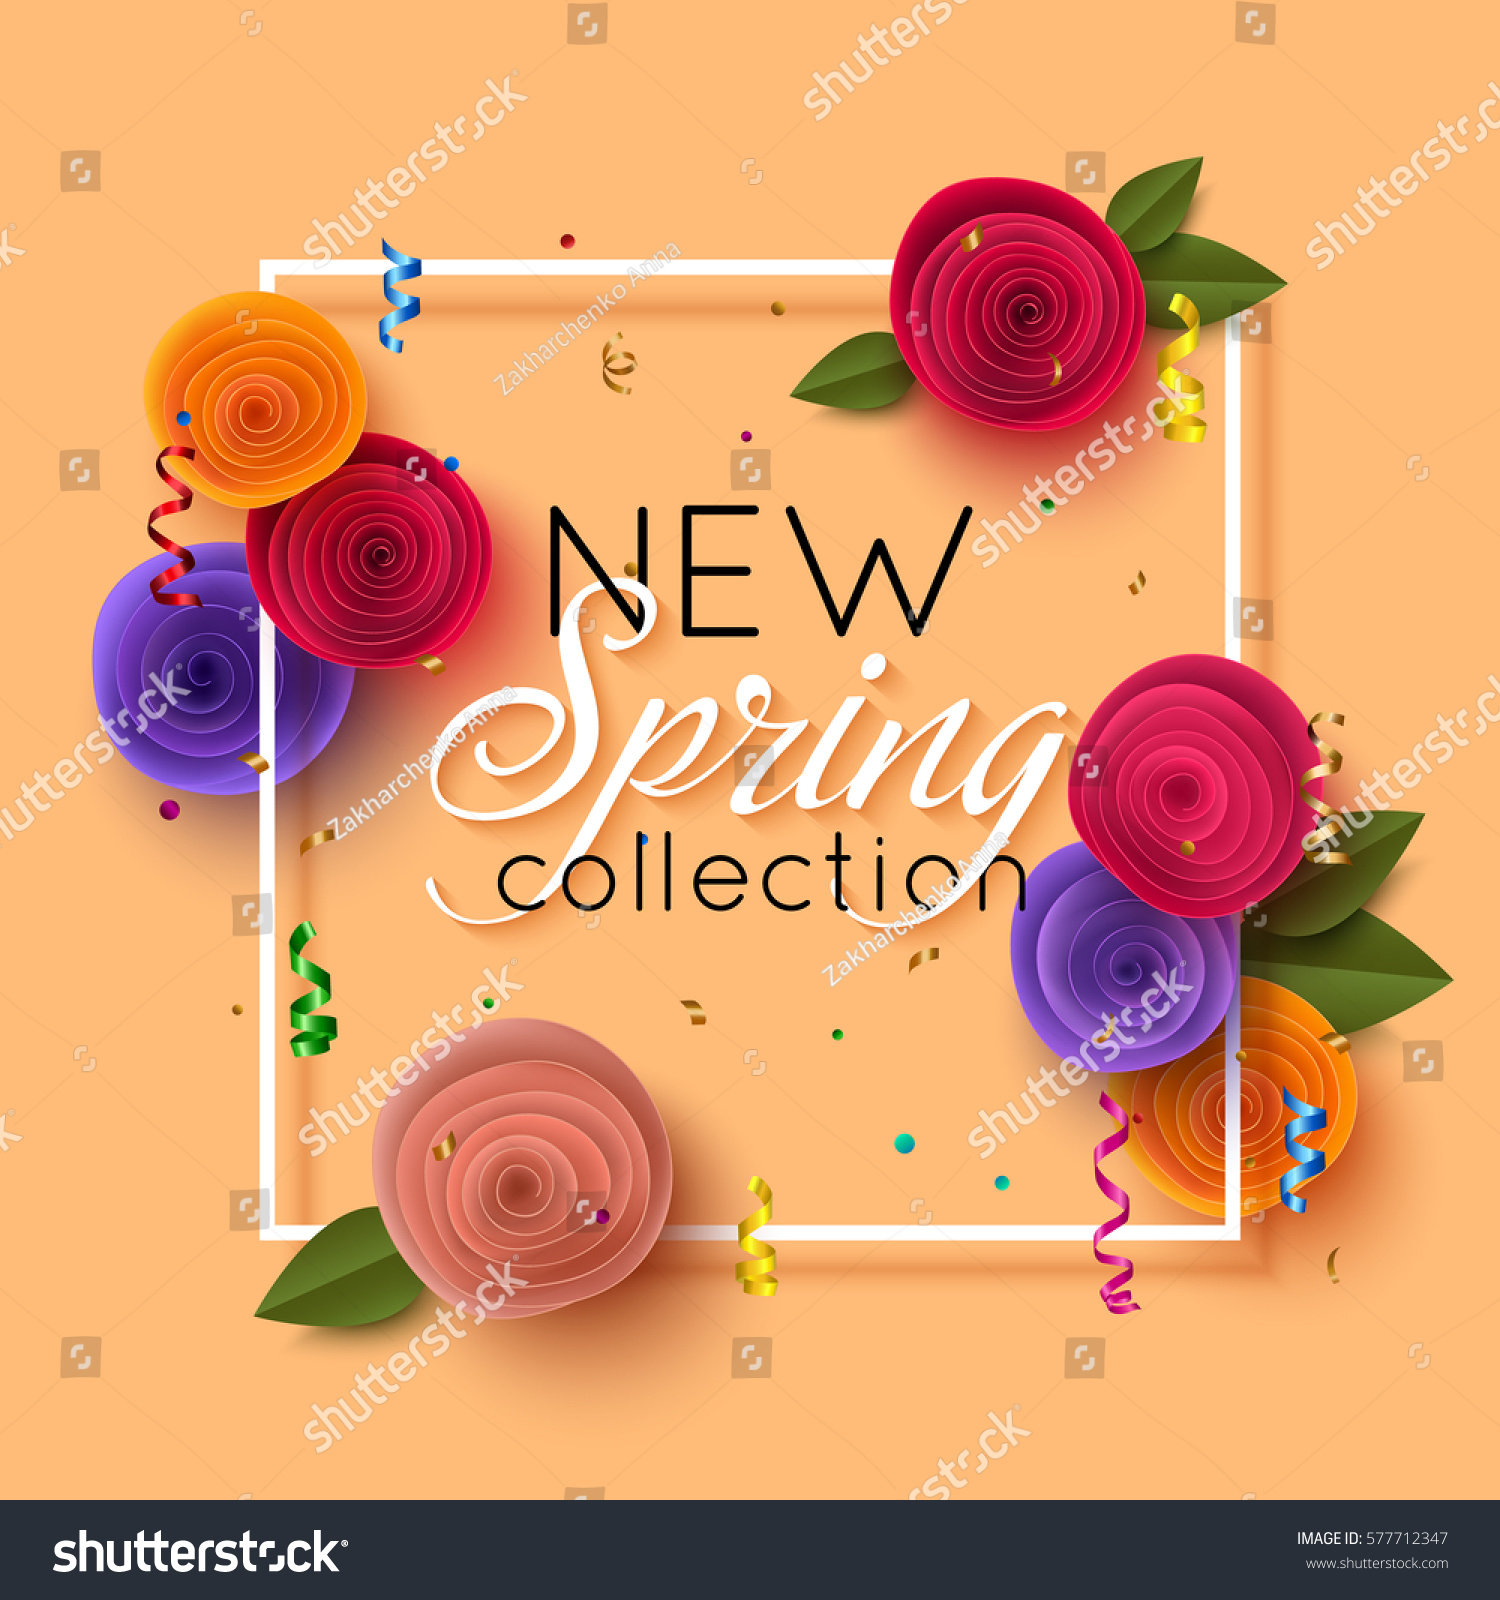 Spring banner paper flowers online shopping stock vector 577712347 spring banner with paper flowers for online shopping advertising actions magazines and websites dhlflorist Image collections